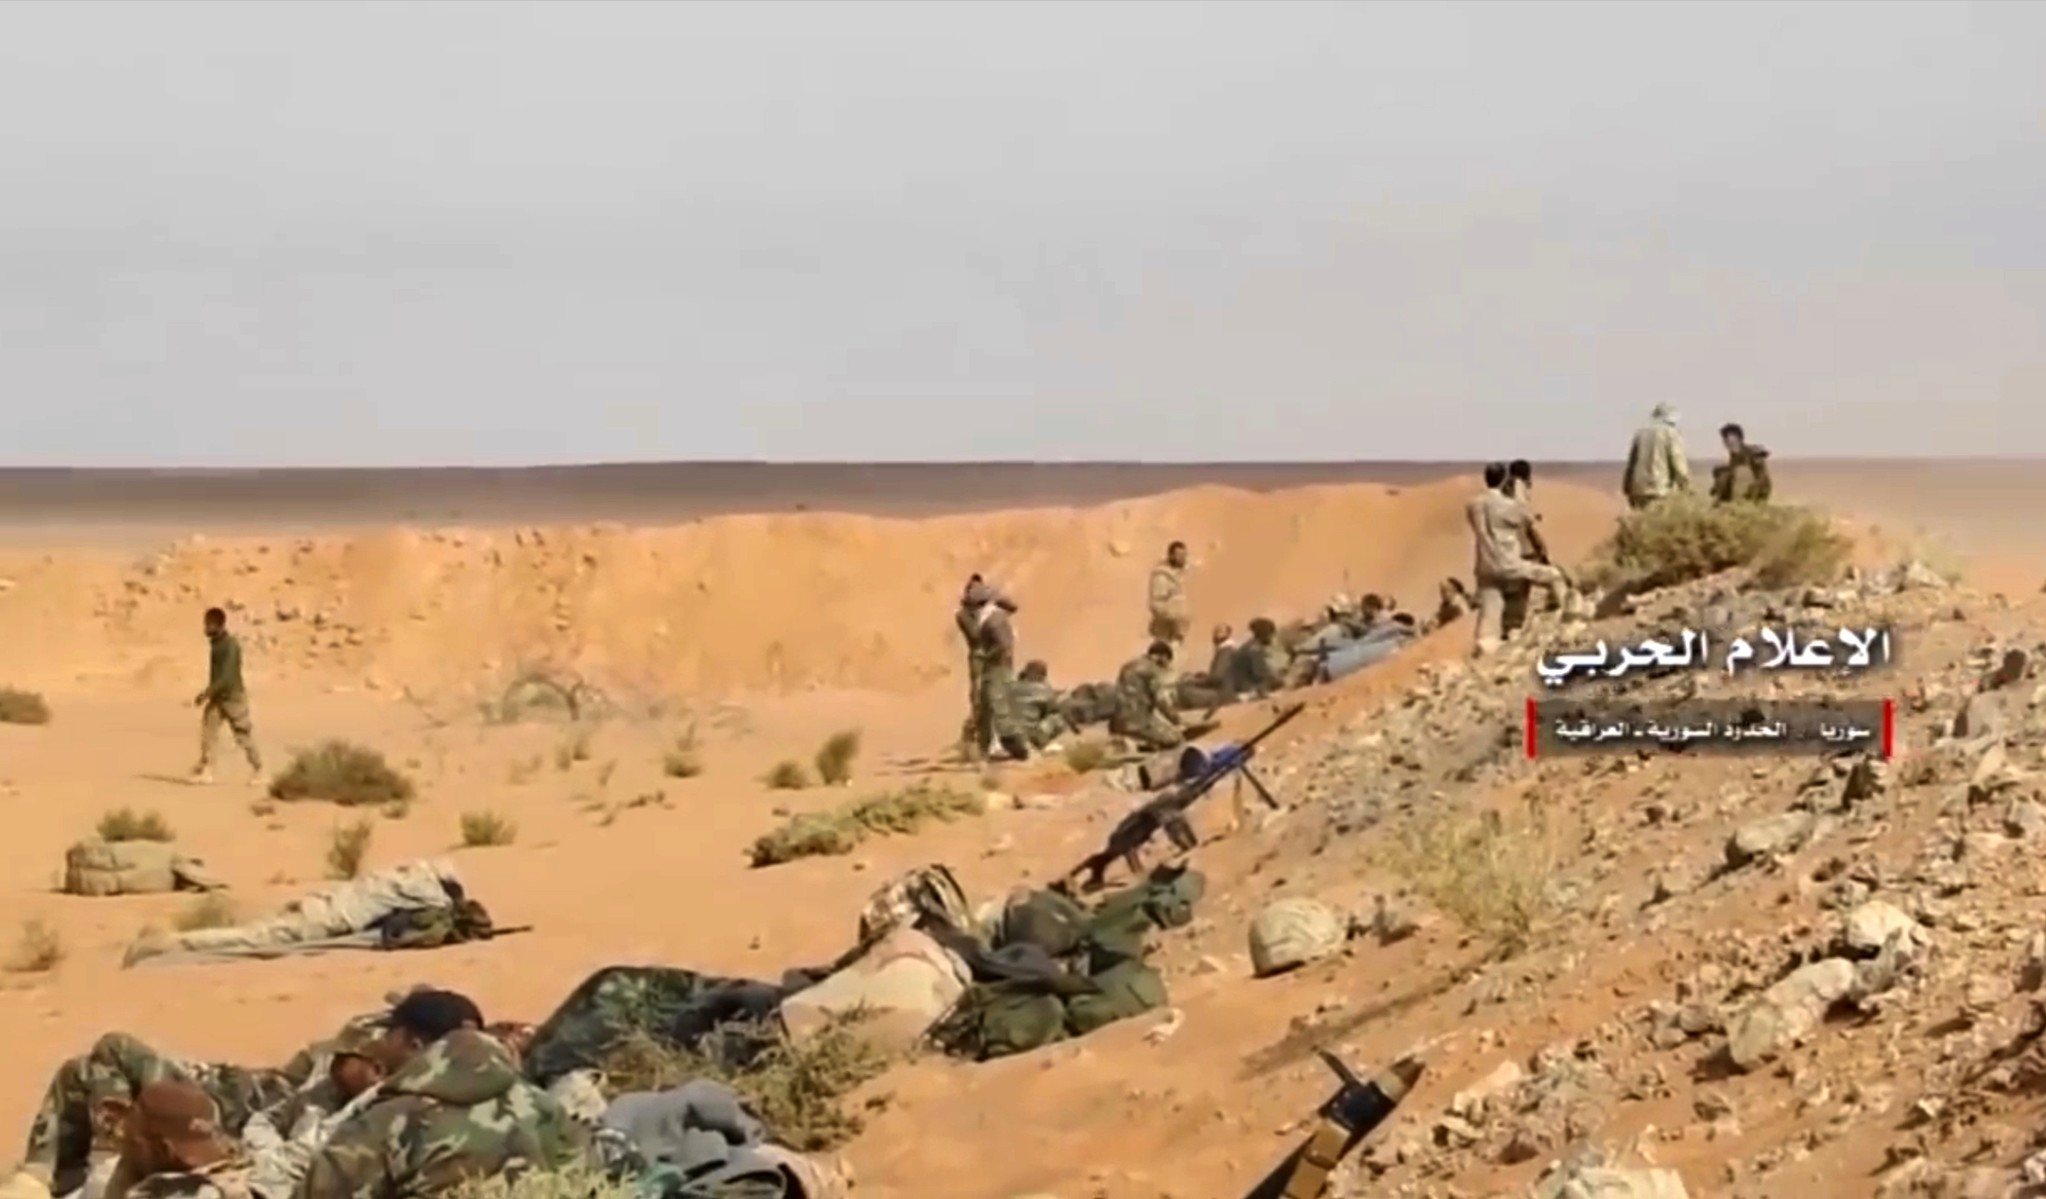 This frame grab from video provided Wednesday, Nov 8, 2017 by the regime-controlled Syrian Central Military Media, shows Assad troops taking up positions on the Iraq-Syria border.